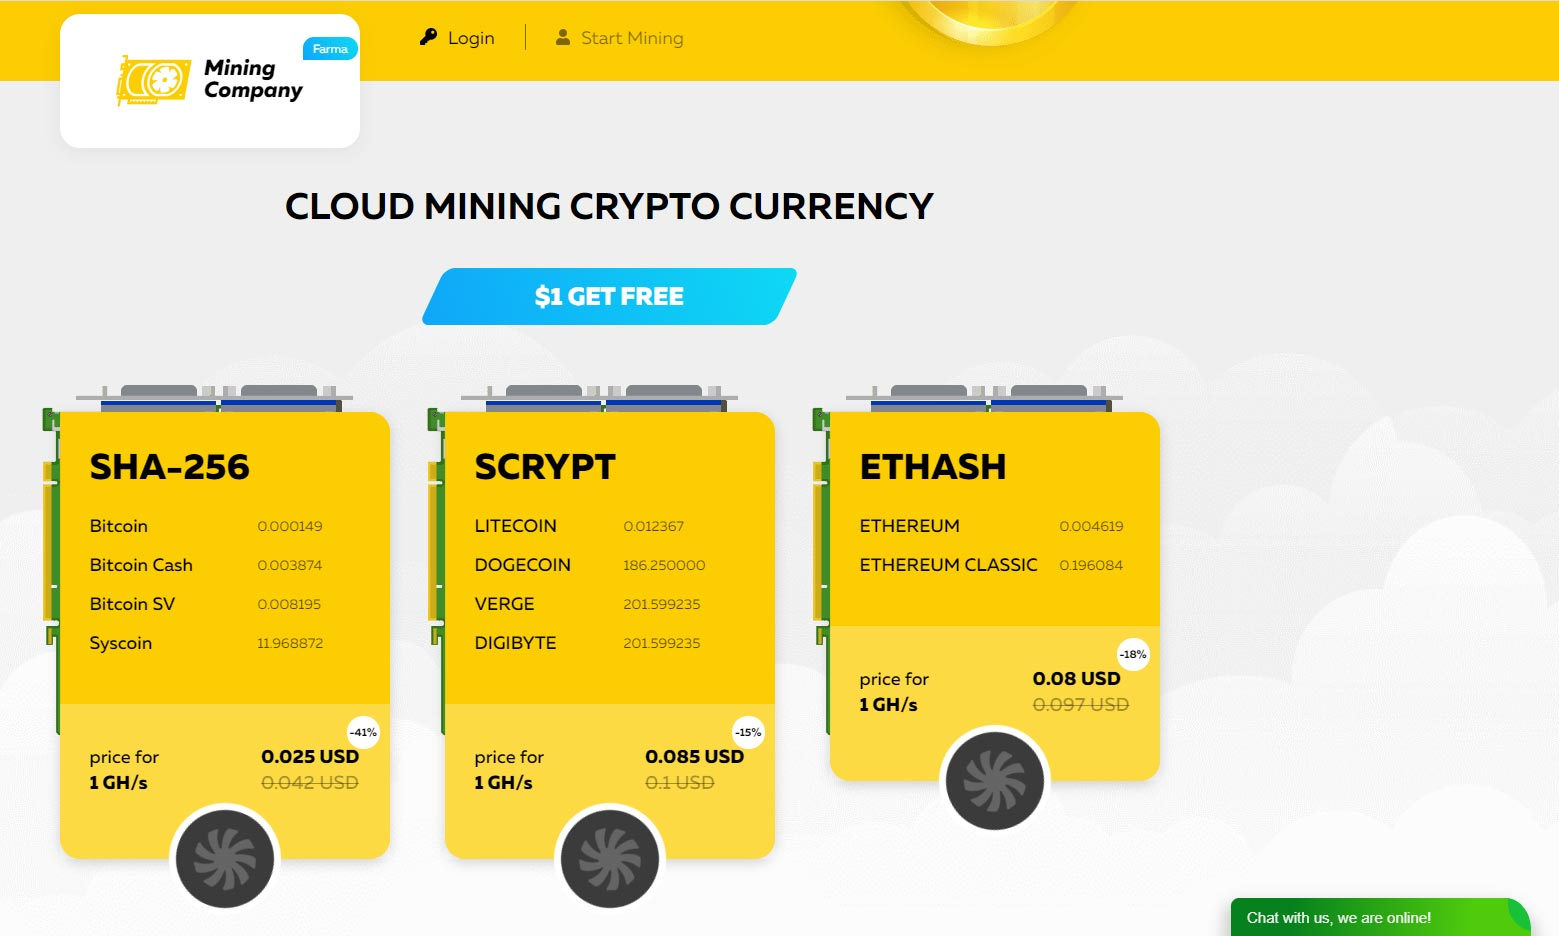 mining company ltd cloud mining